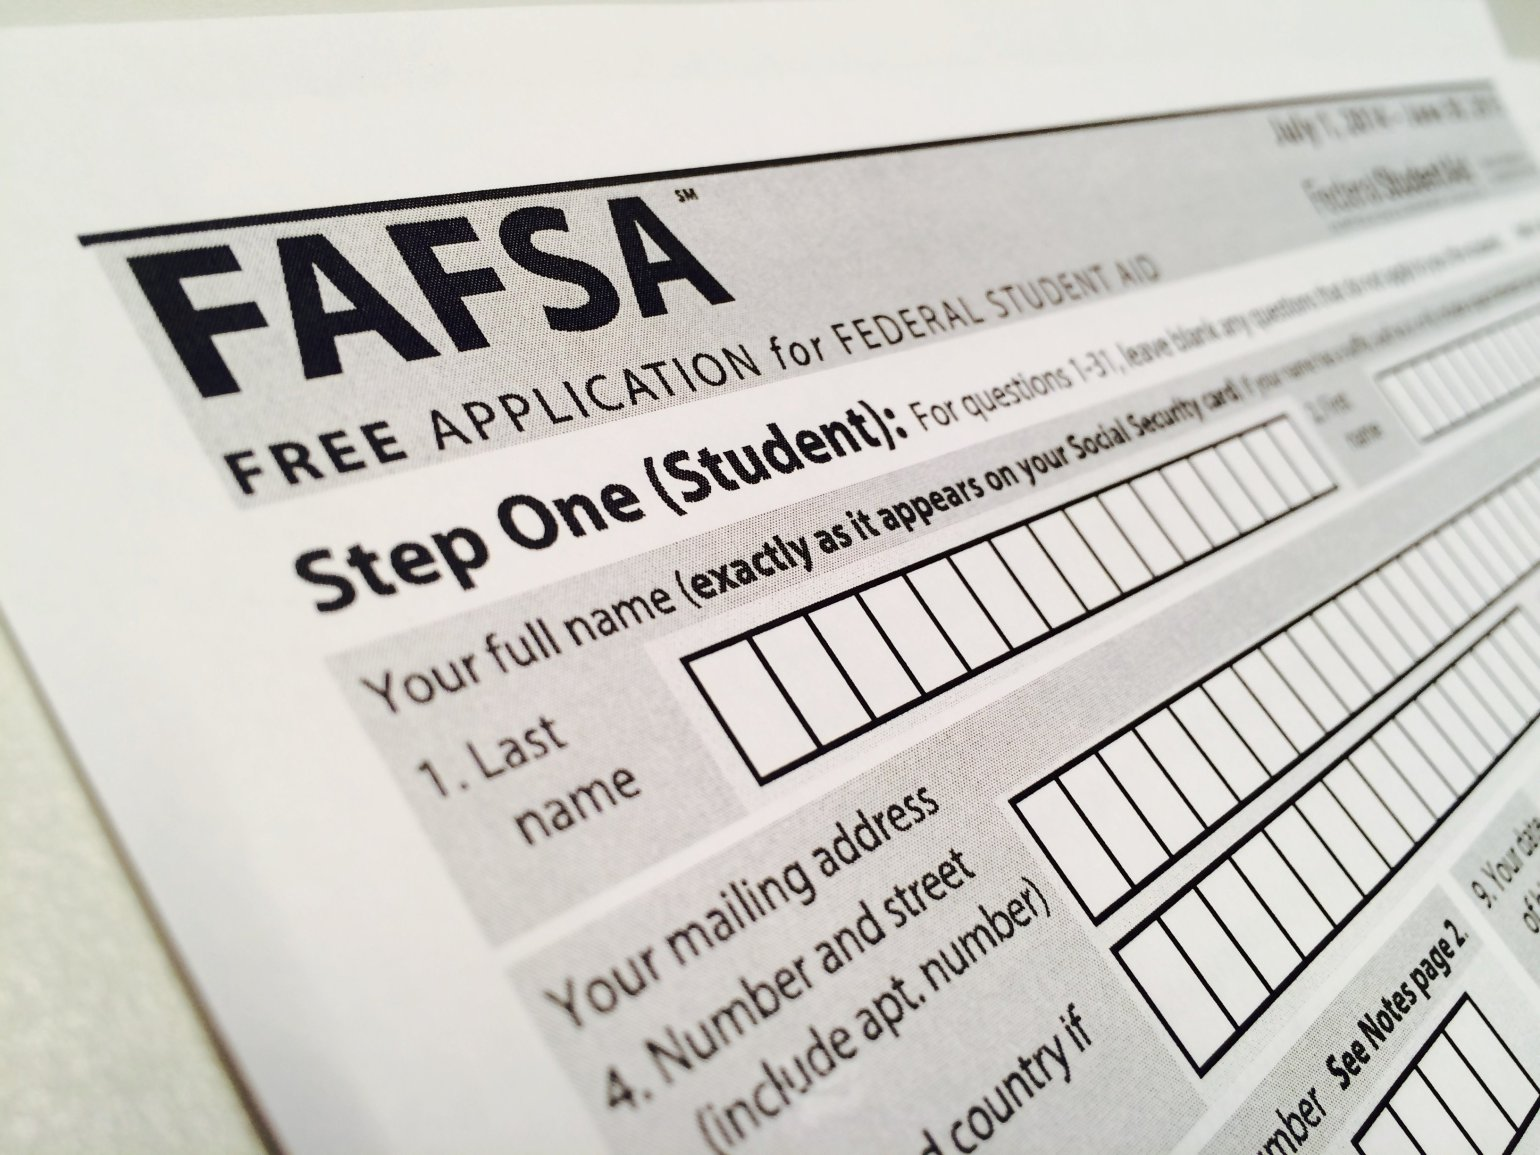 FAFSA Review - $200